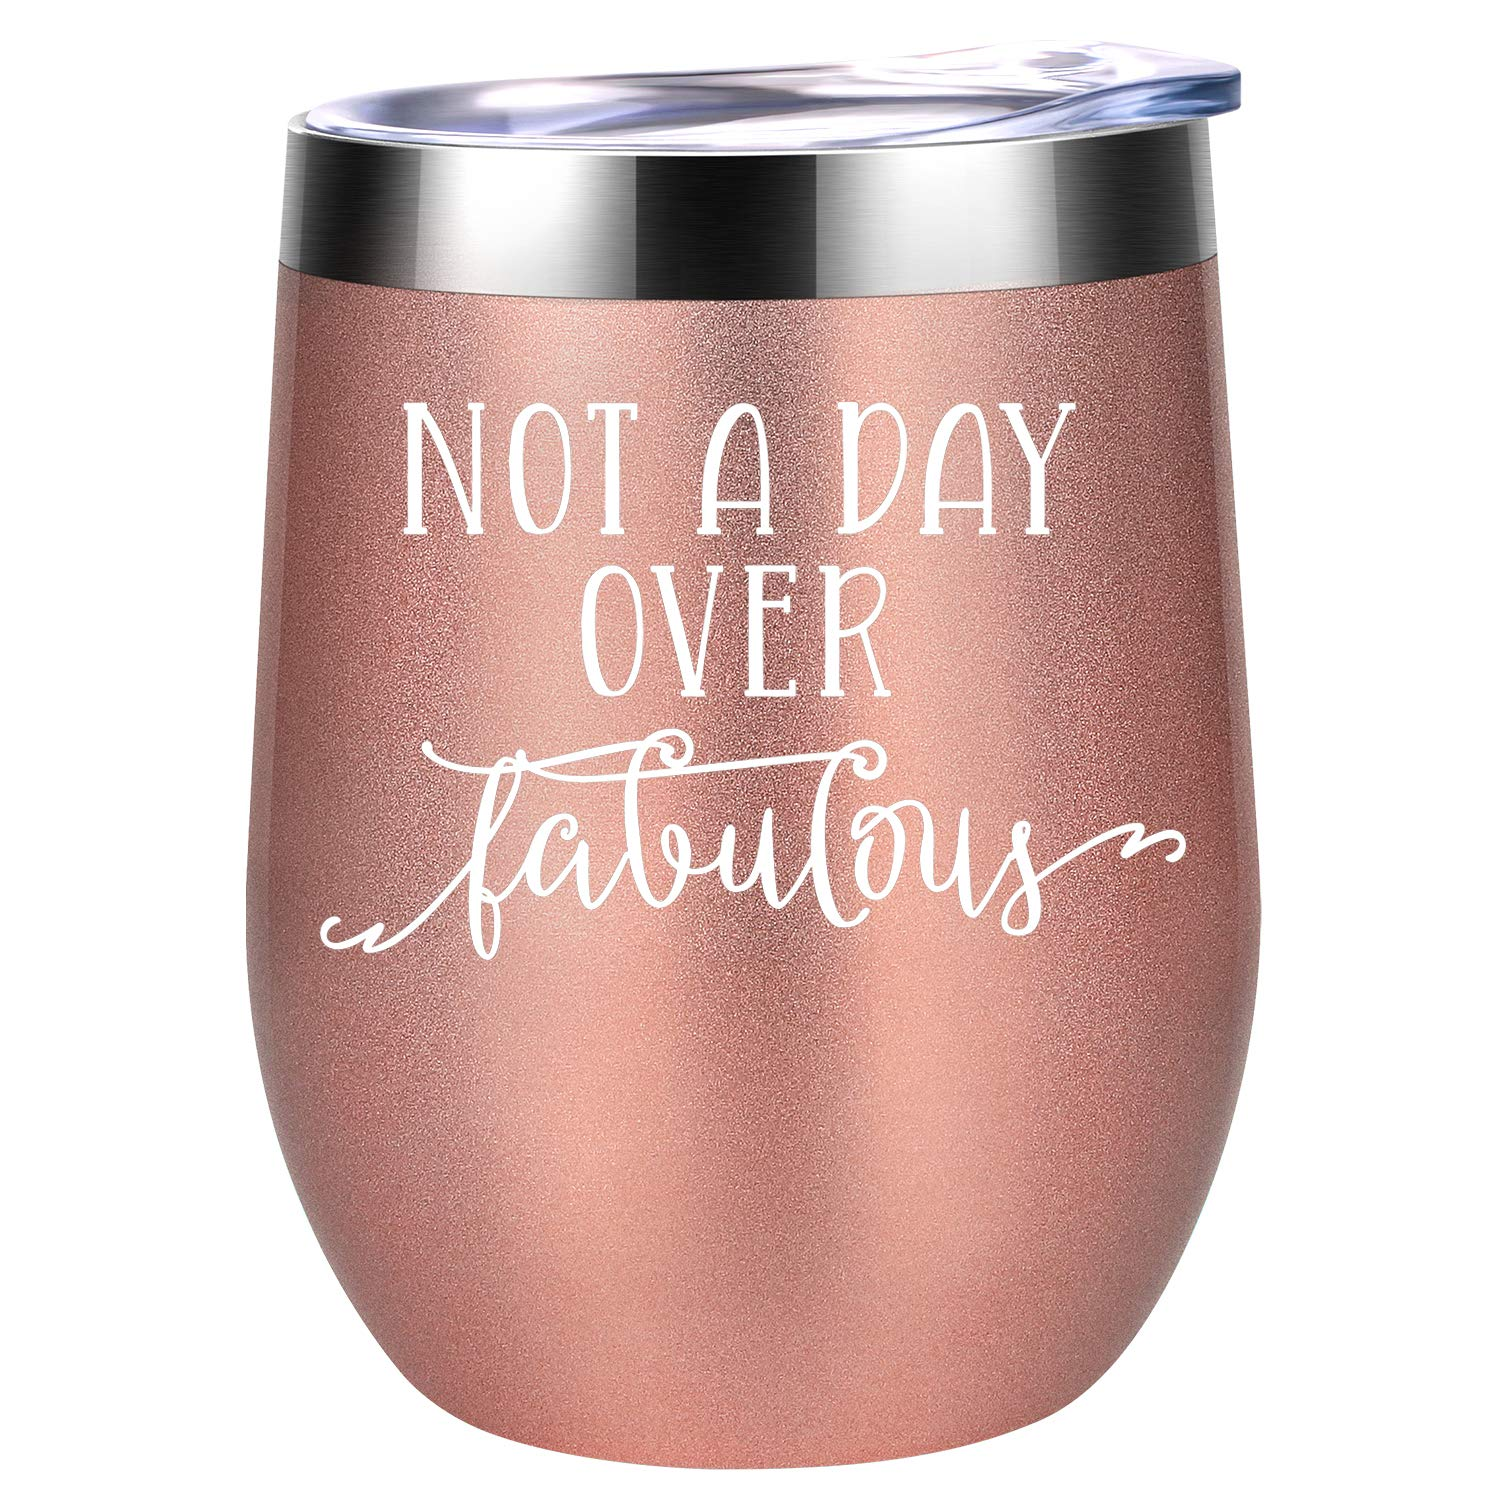 Not a Day Over Fabulous - Funny Birthday Wine Gifts Ideas for Women, BFF, Best Friends, Coworkers, Her, Wife, Mom, Daughter, Sister, Aunt - Coolife 12oz Stemless Insulated Wine Tumbler with Lid by Coolife